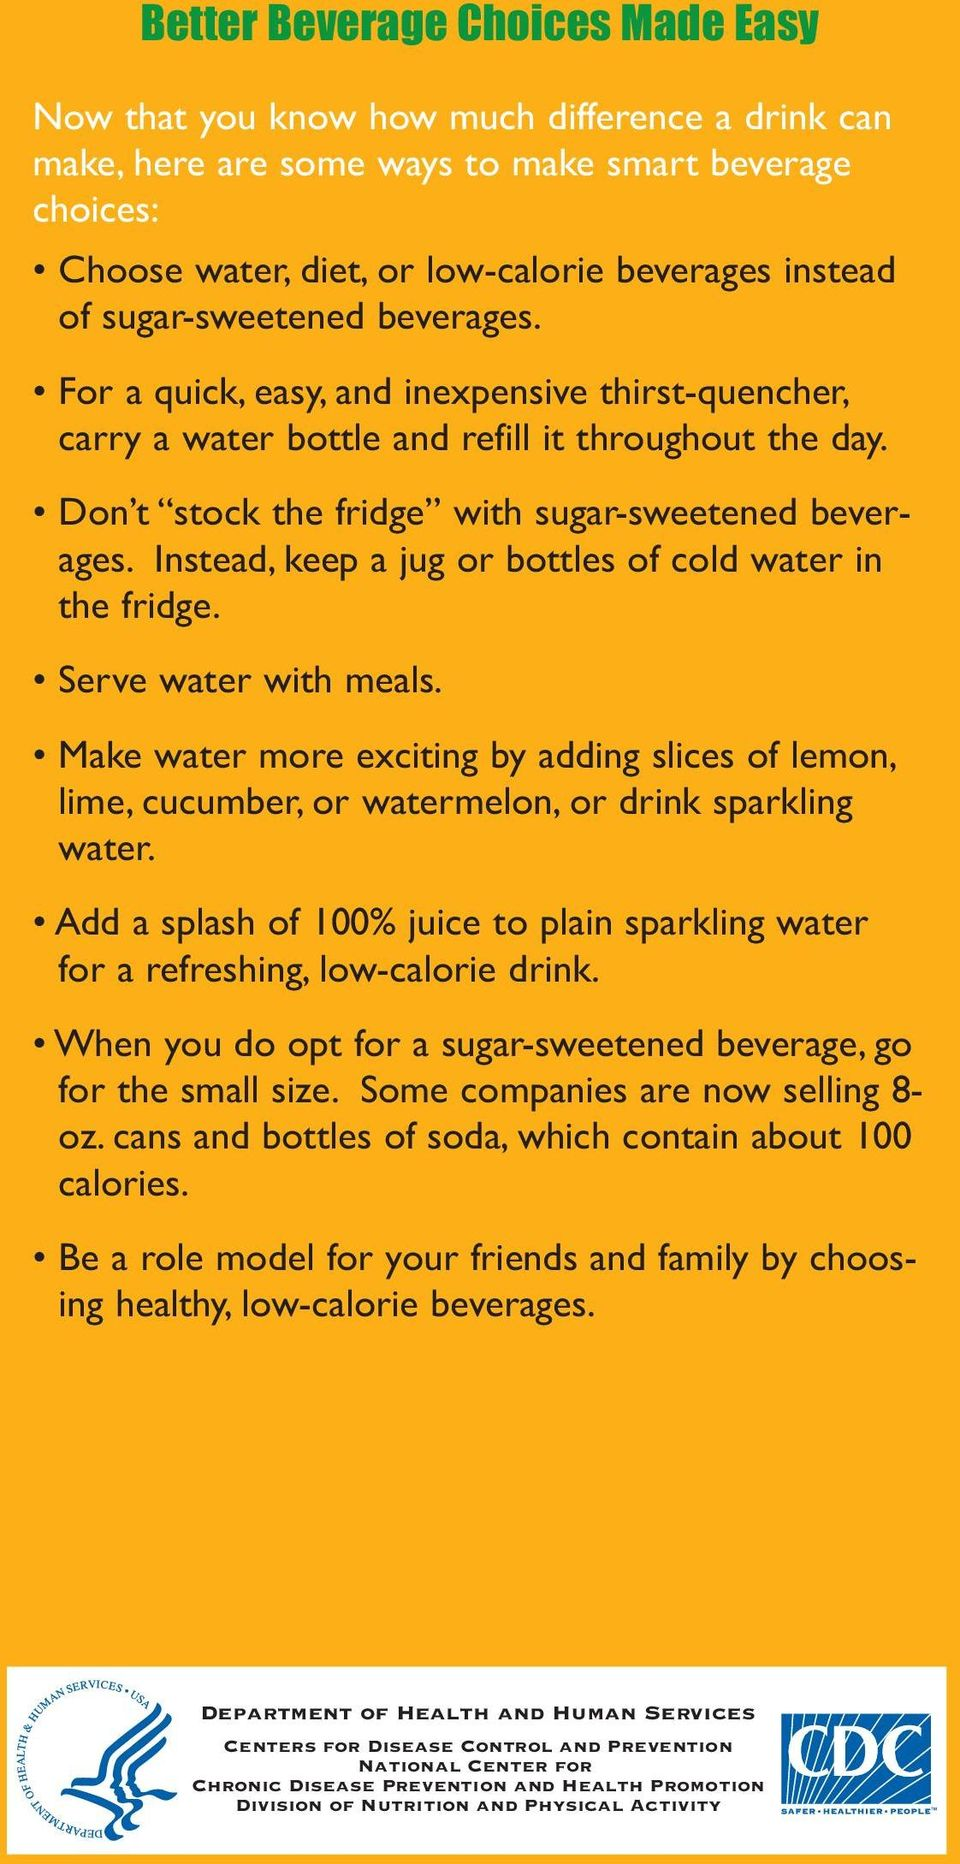 Instead, keep a jug or bottles of cold water in the fridge. Serve water with meals. Make water more exciting by adding slices of lemon, lime, cucumber, or watermelon, or drink sparkling water.